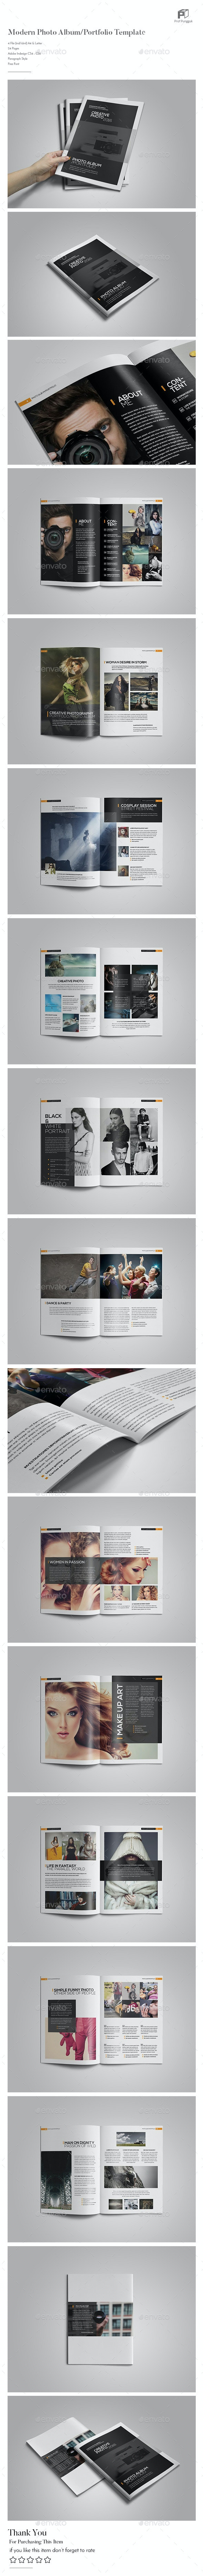 Photography Portfolio/Photo Album Vol.3 - Portfolio Brochures